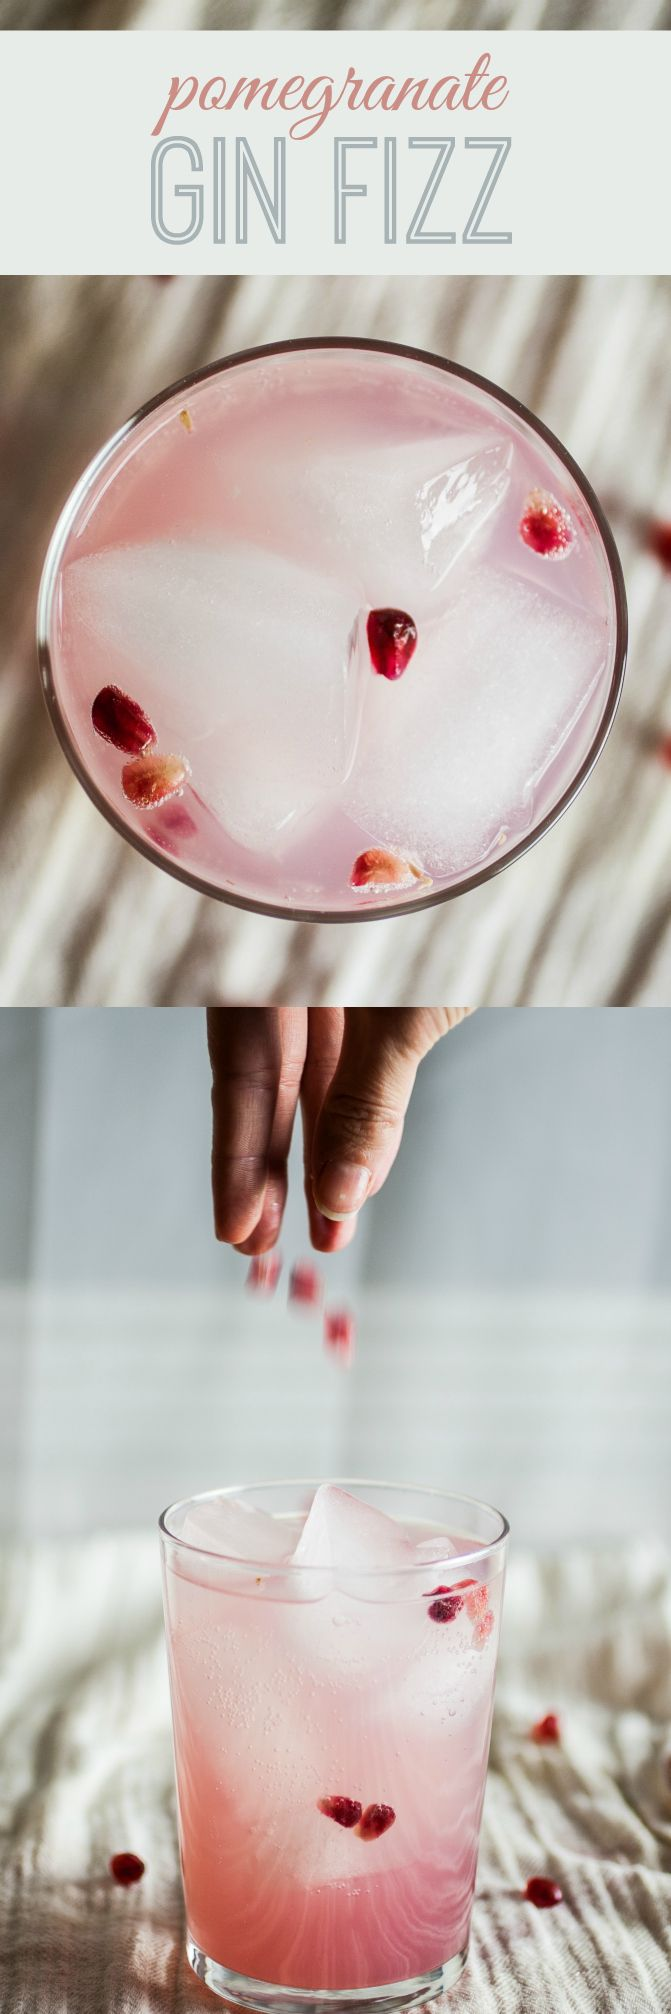 Produce On Parade - Pomegranate Gin Fizz & G'Vine Review - Blended with fresh pomegranate seeds and a floral gin made from grapes. Topped with fuzzy water, this is the perfect lightly scented adult beverage to sip on. If you're not a big hard alcohol fan, this is probably right up your alley.